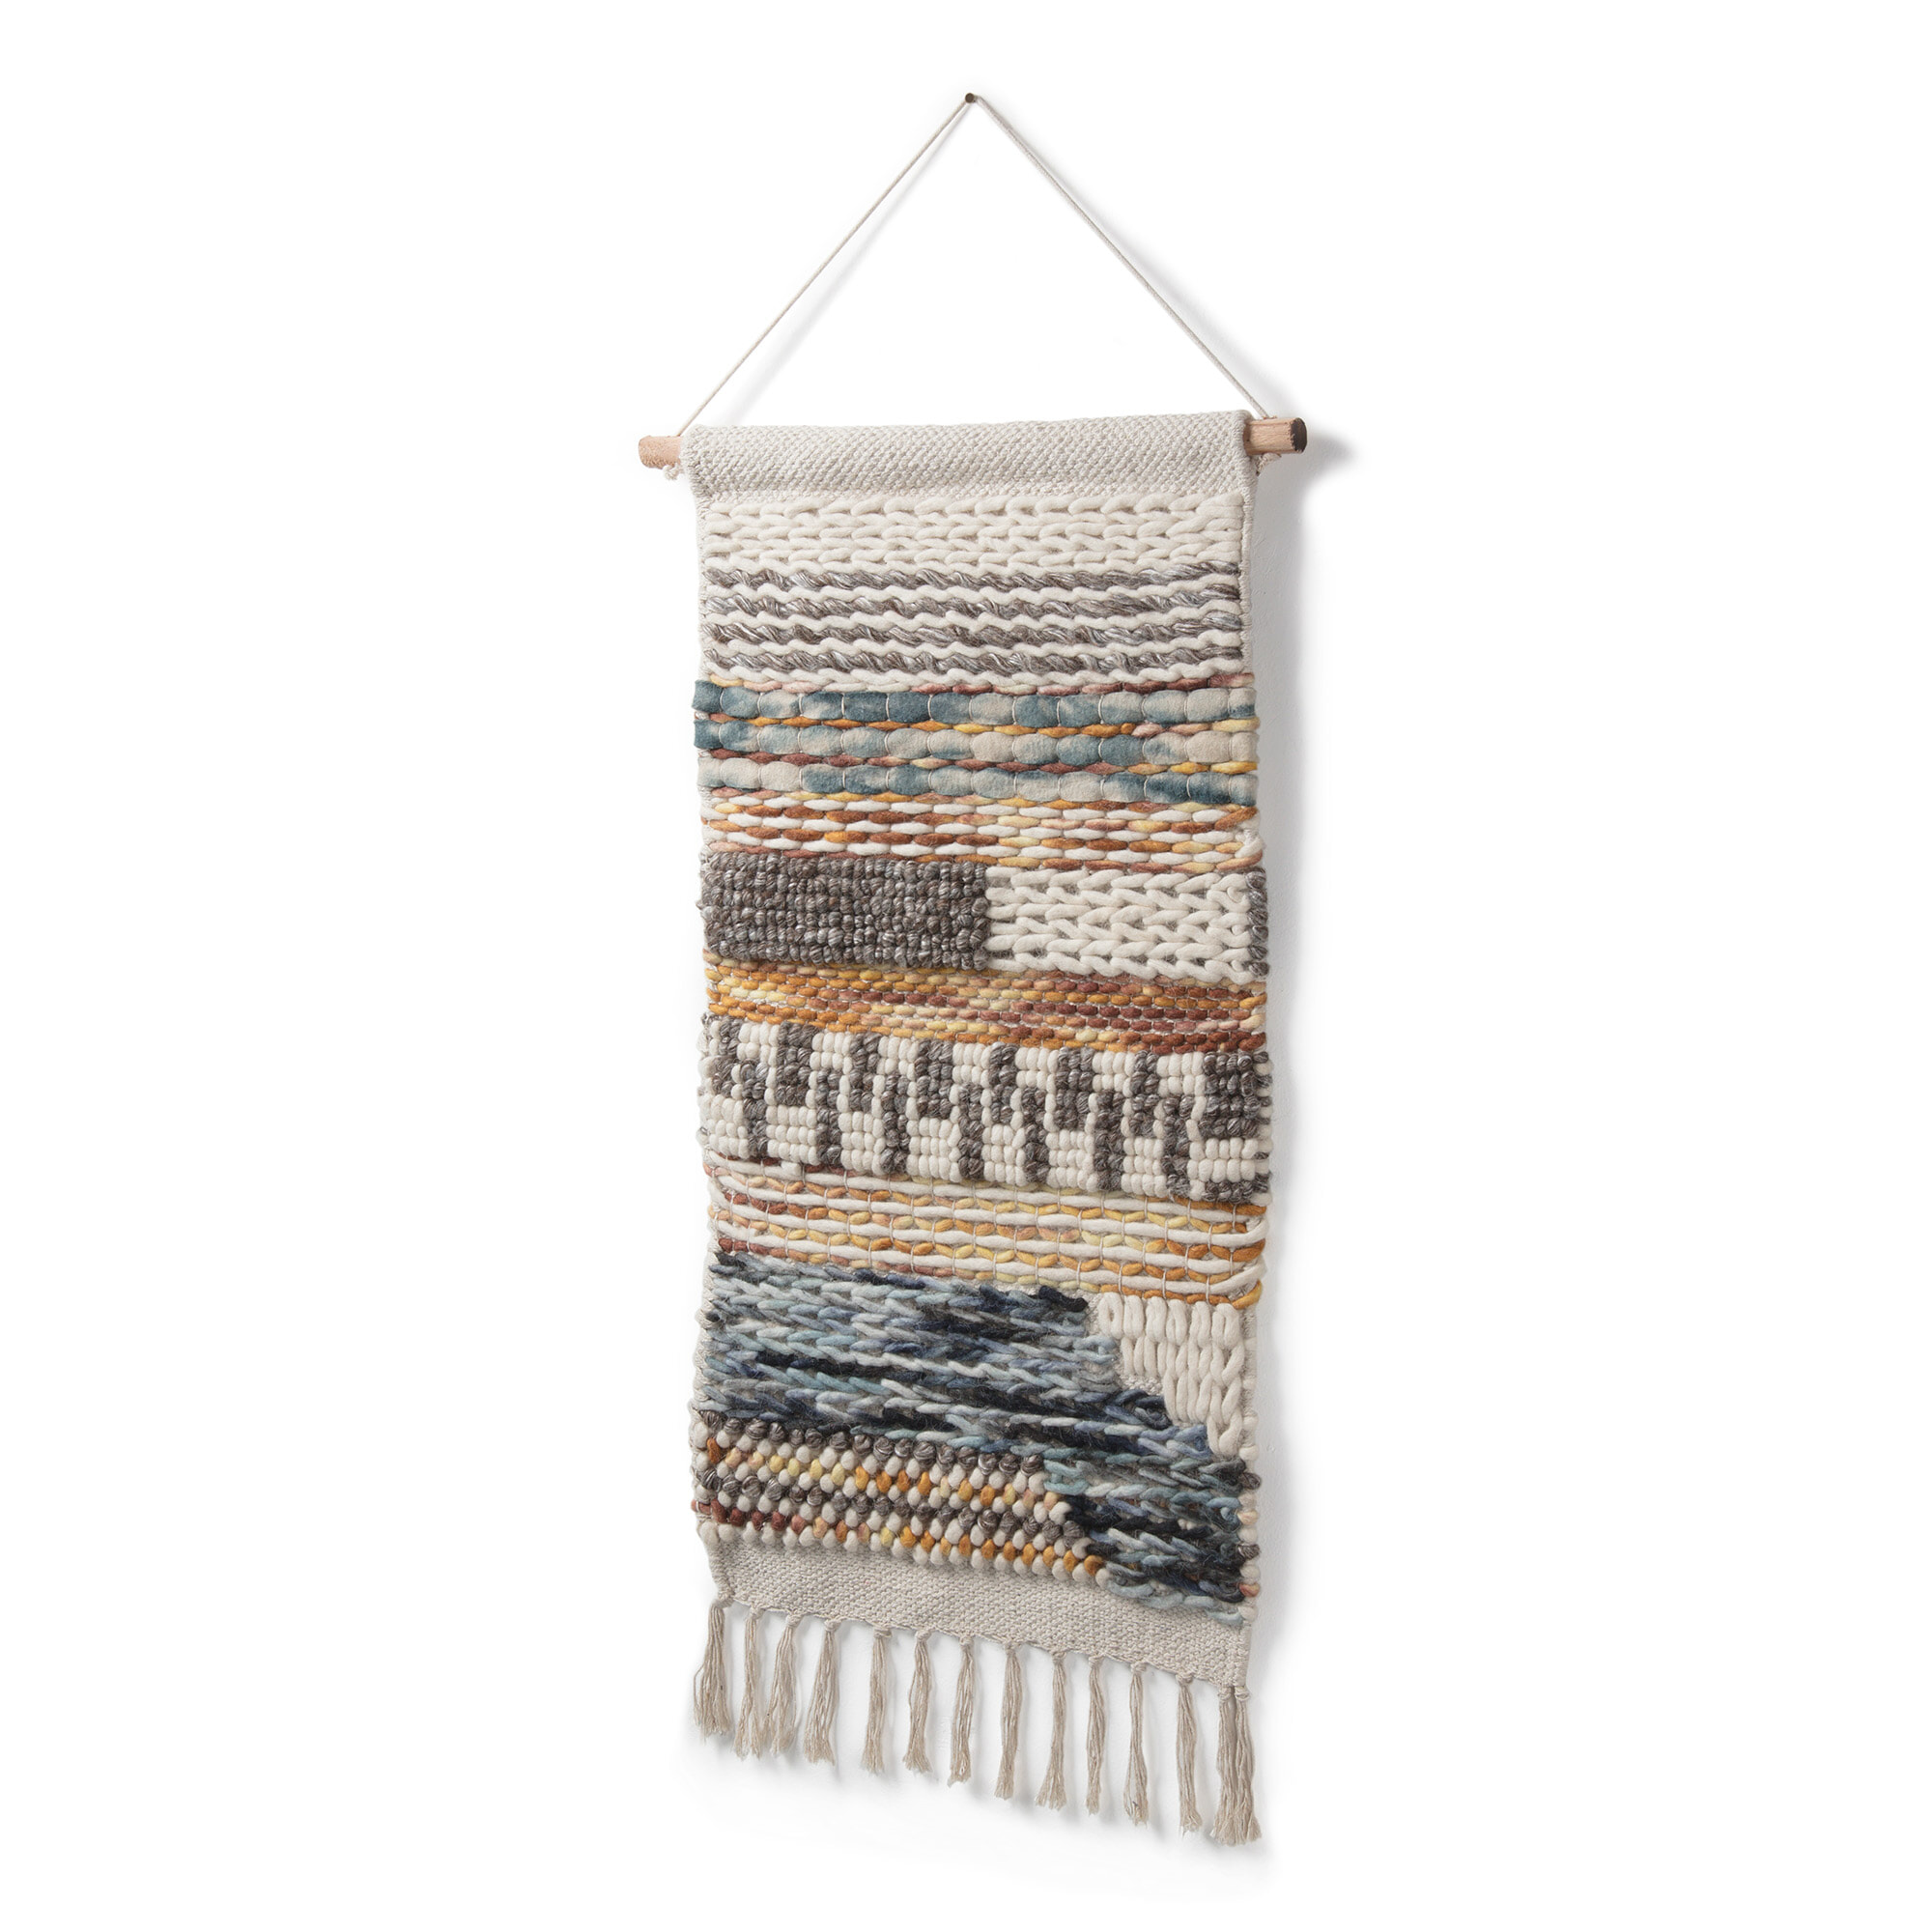 Kave Home Wandkleed 'Exist' 70 x 40cm | Kave Home